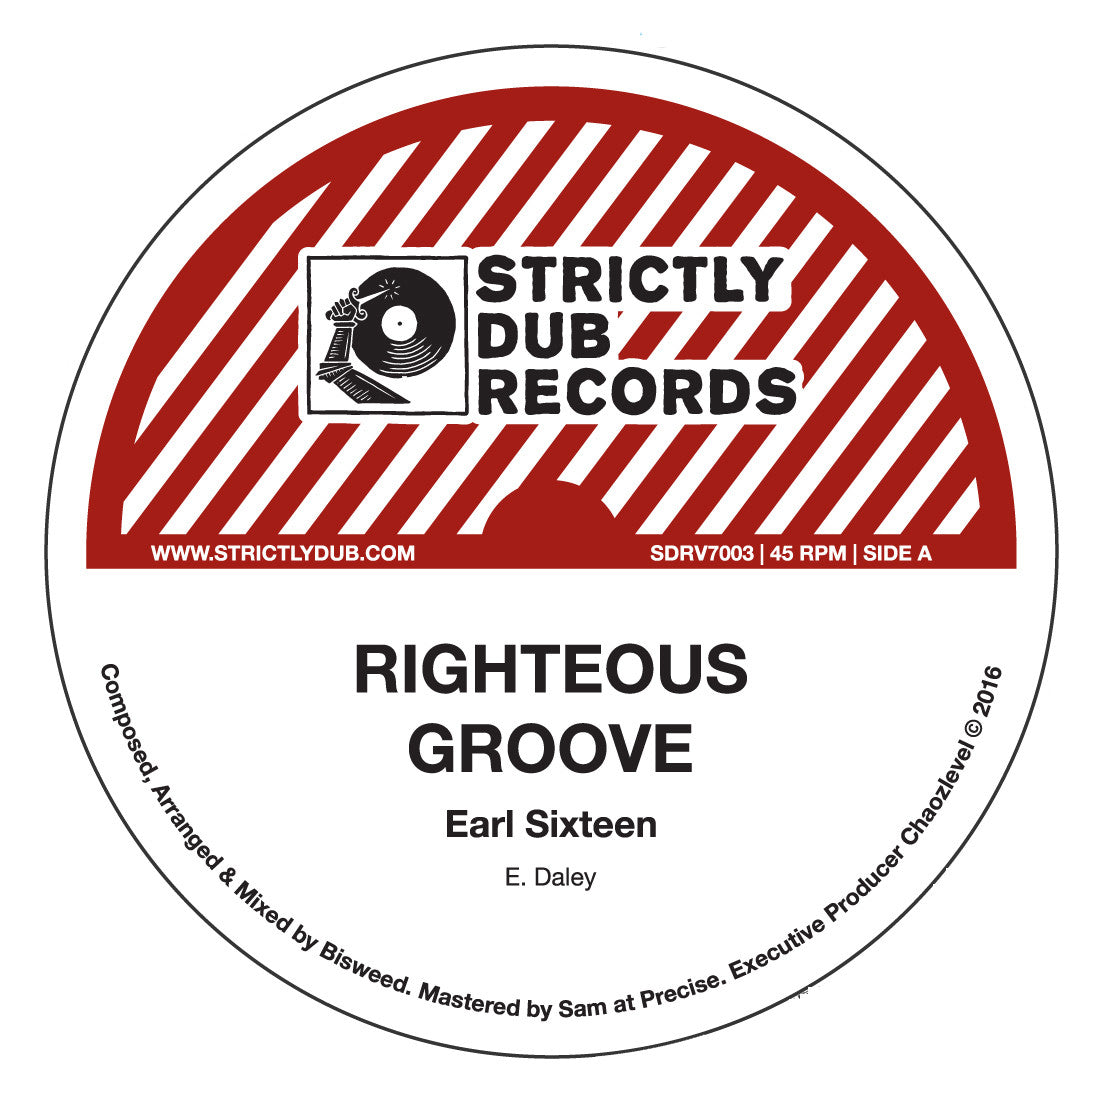 Earl 16 - Righteous Groove / Bisweed & Chaozlevel - Righteous Melodica , Vinyl - Strictly Dub Records, Unearthed Sounds